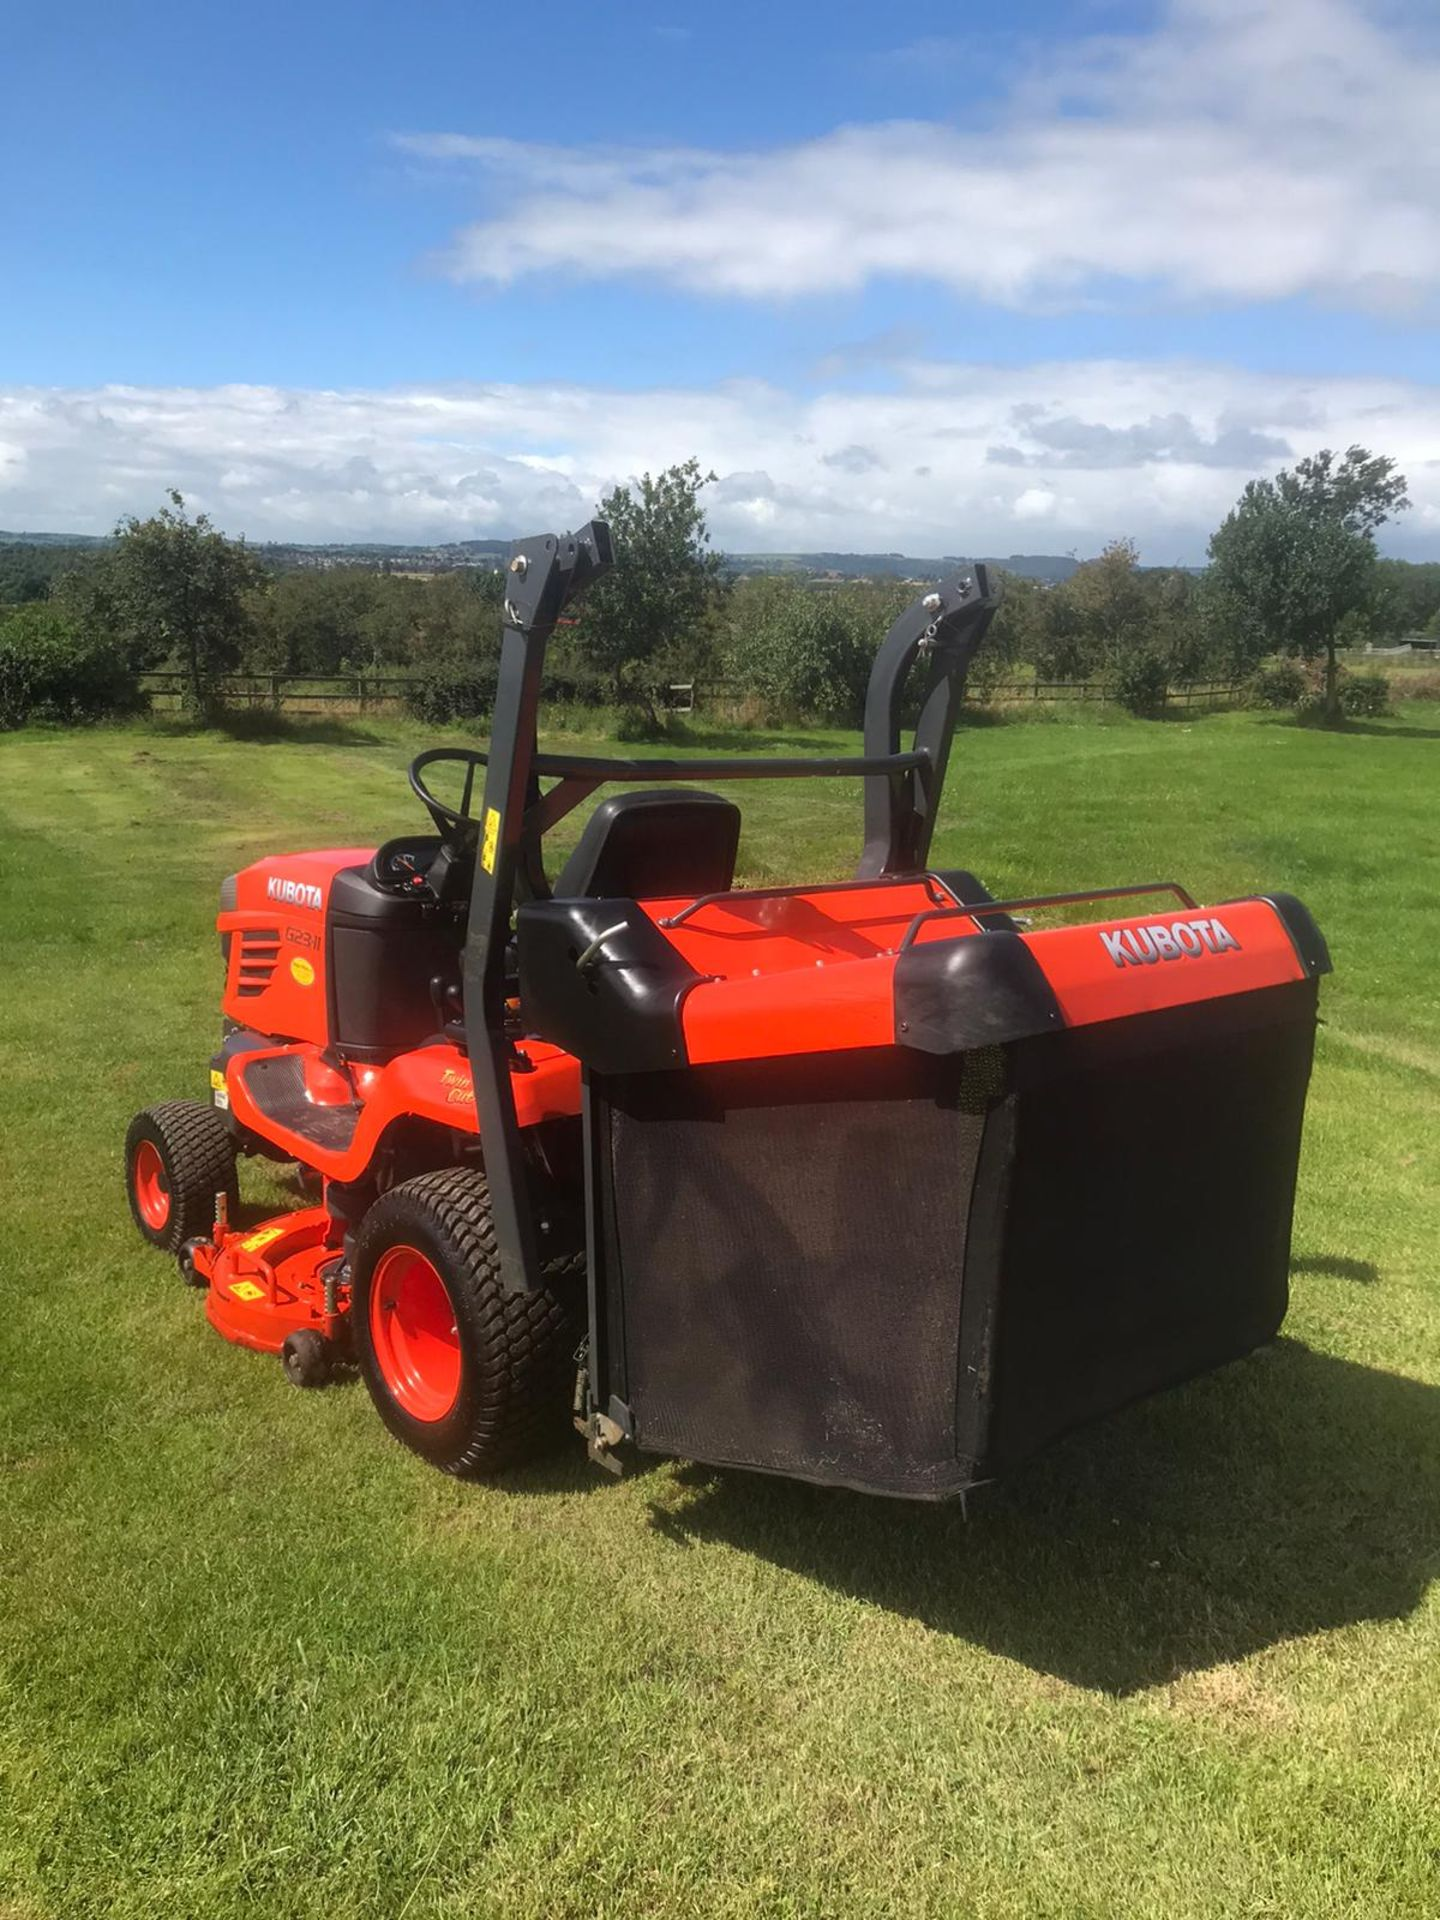 2015 KUBOTA G23-II RIDE ON LAWN MOWER, RUNS, DRIVES & CUTS, EX DEMO CONDITION, 203 HOURS *PLUS VAT* - Image 4 of 5